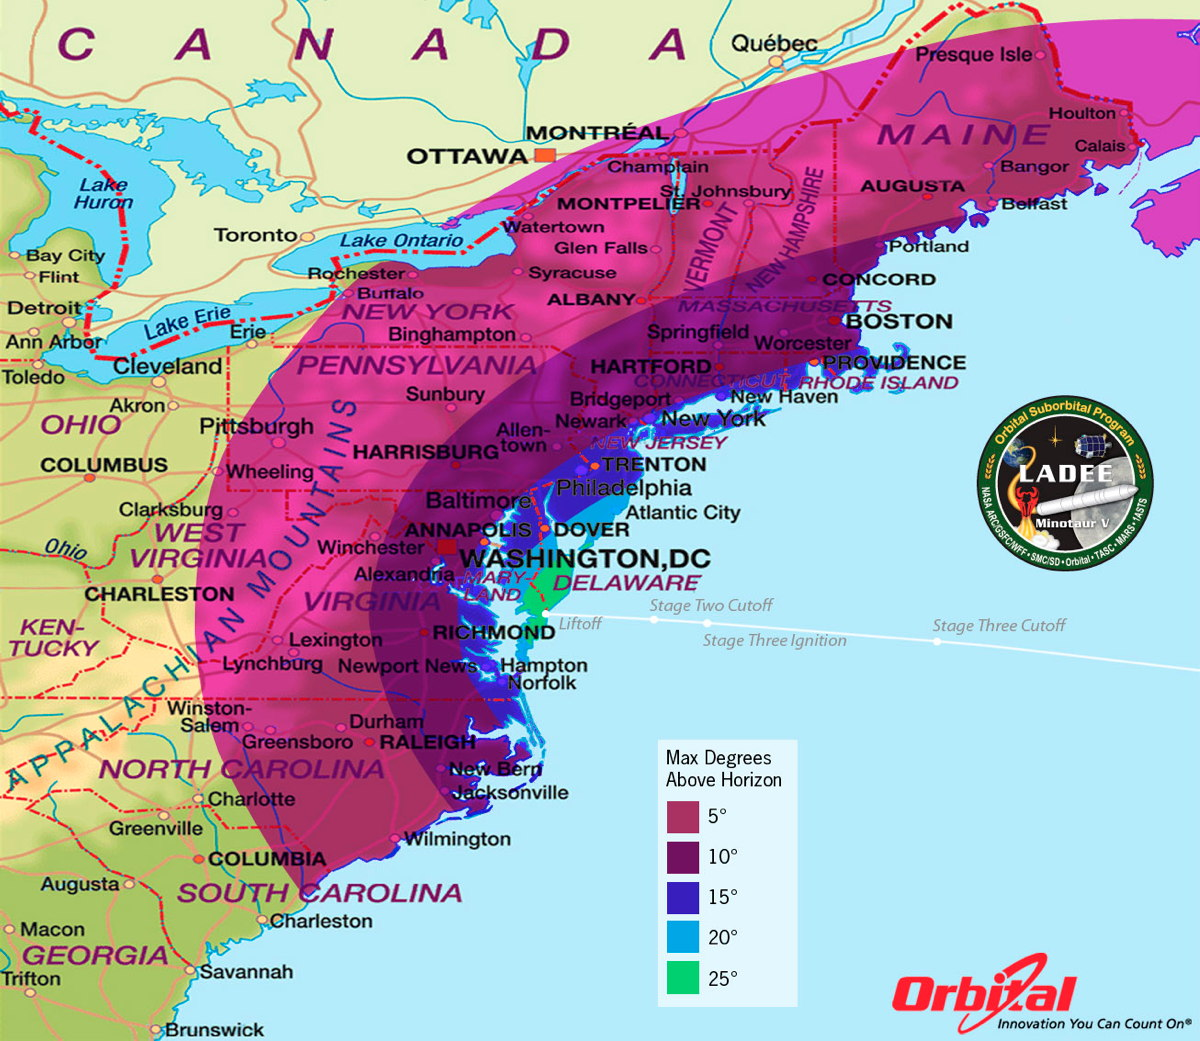 Map Of East Coast Beaches My Blog - East coast us map